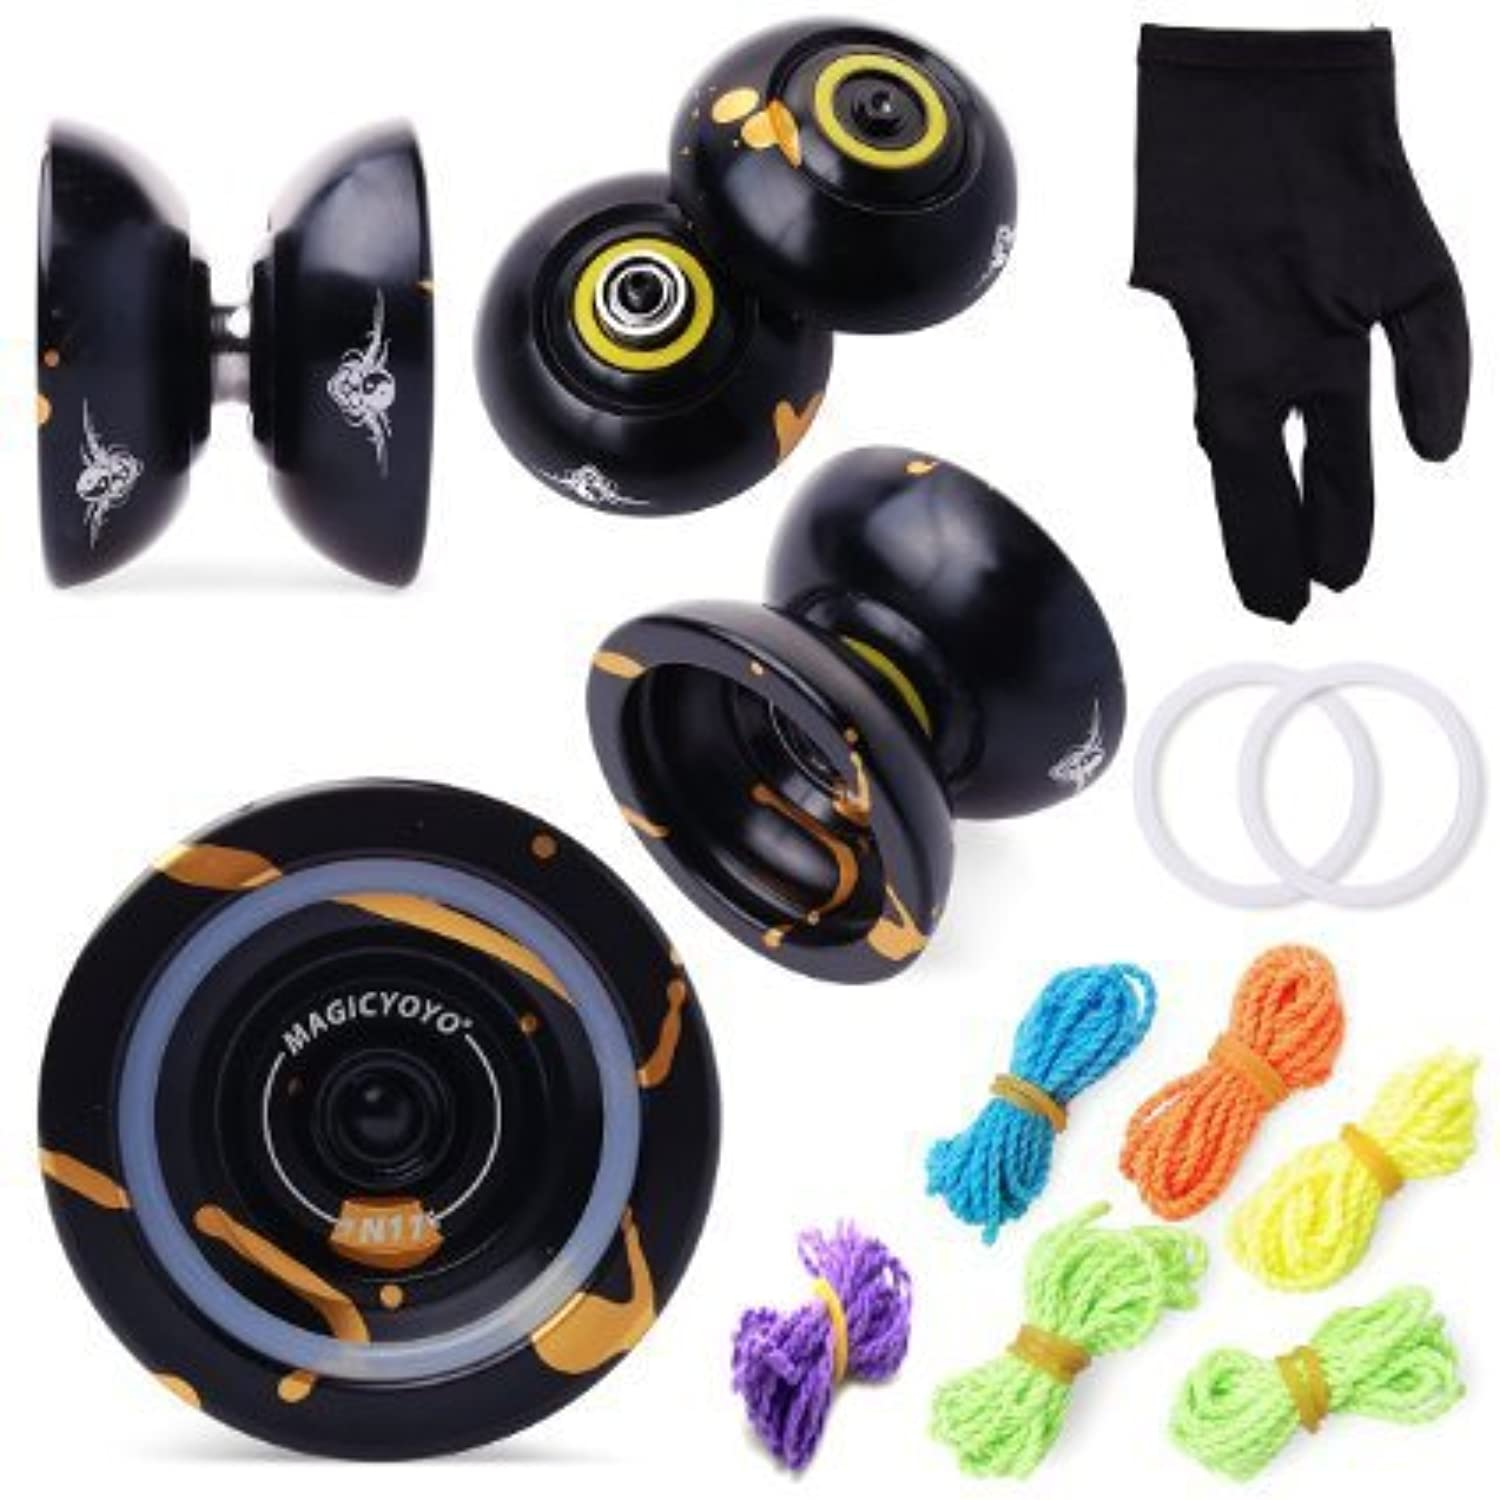 Magic Yoyo N11 with Weight Ring Alloy Aluminum Unresponsive Professional Yo-yo Toy +6 Strings+Glove(Black With Golden) by MAGICYOYO [並行輸入品]